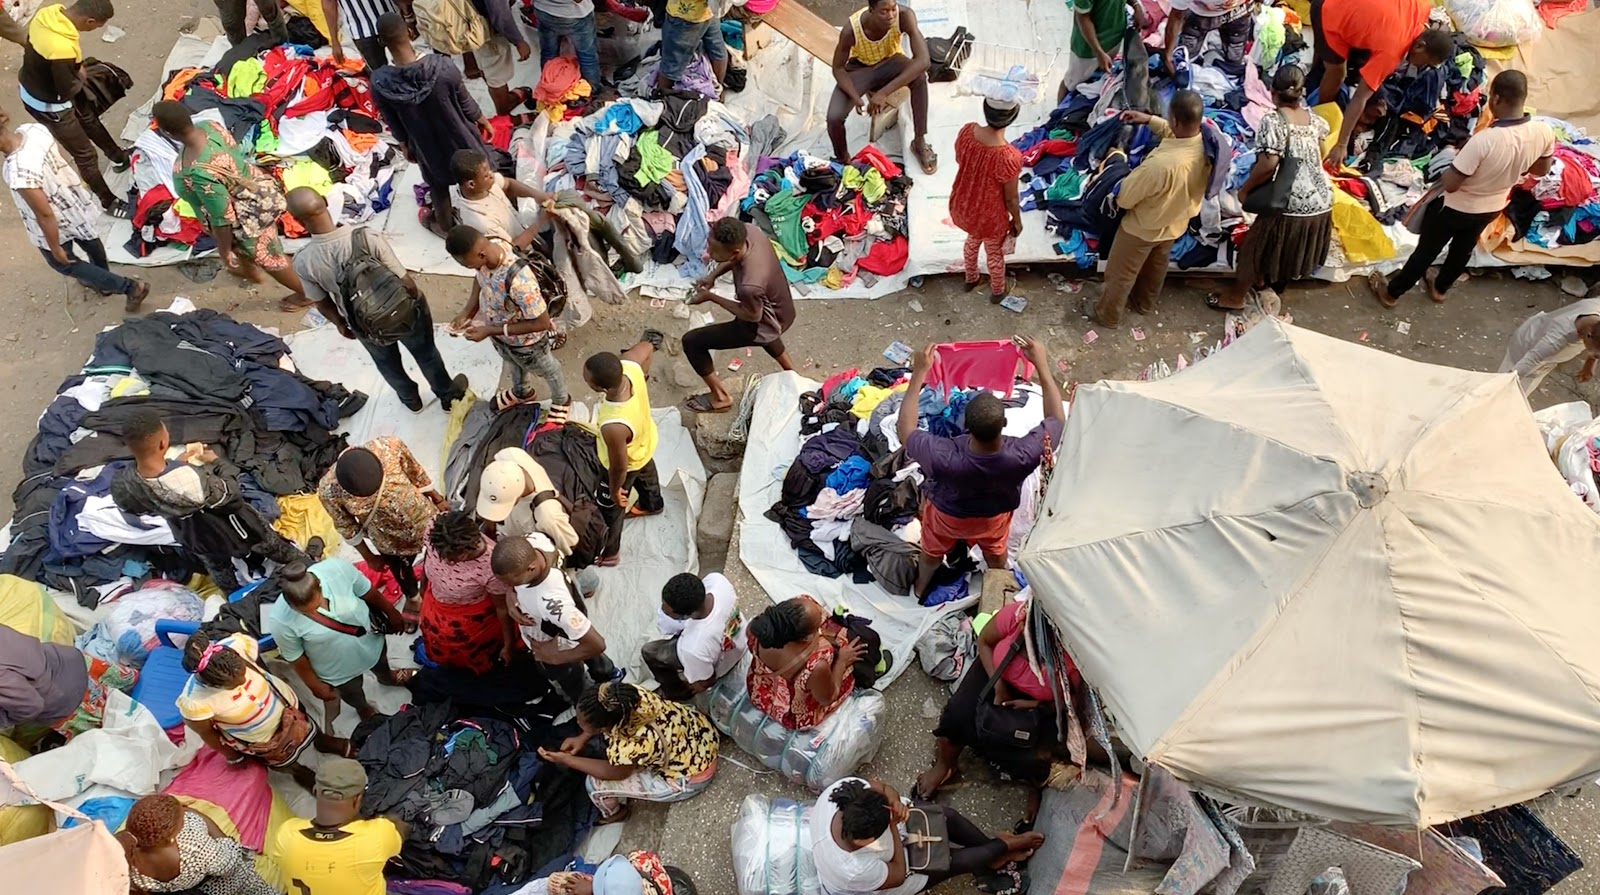 Local market in Accra, Ghana where our second hand clothes are dumped/sold